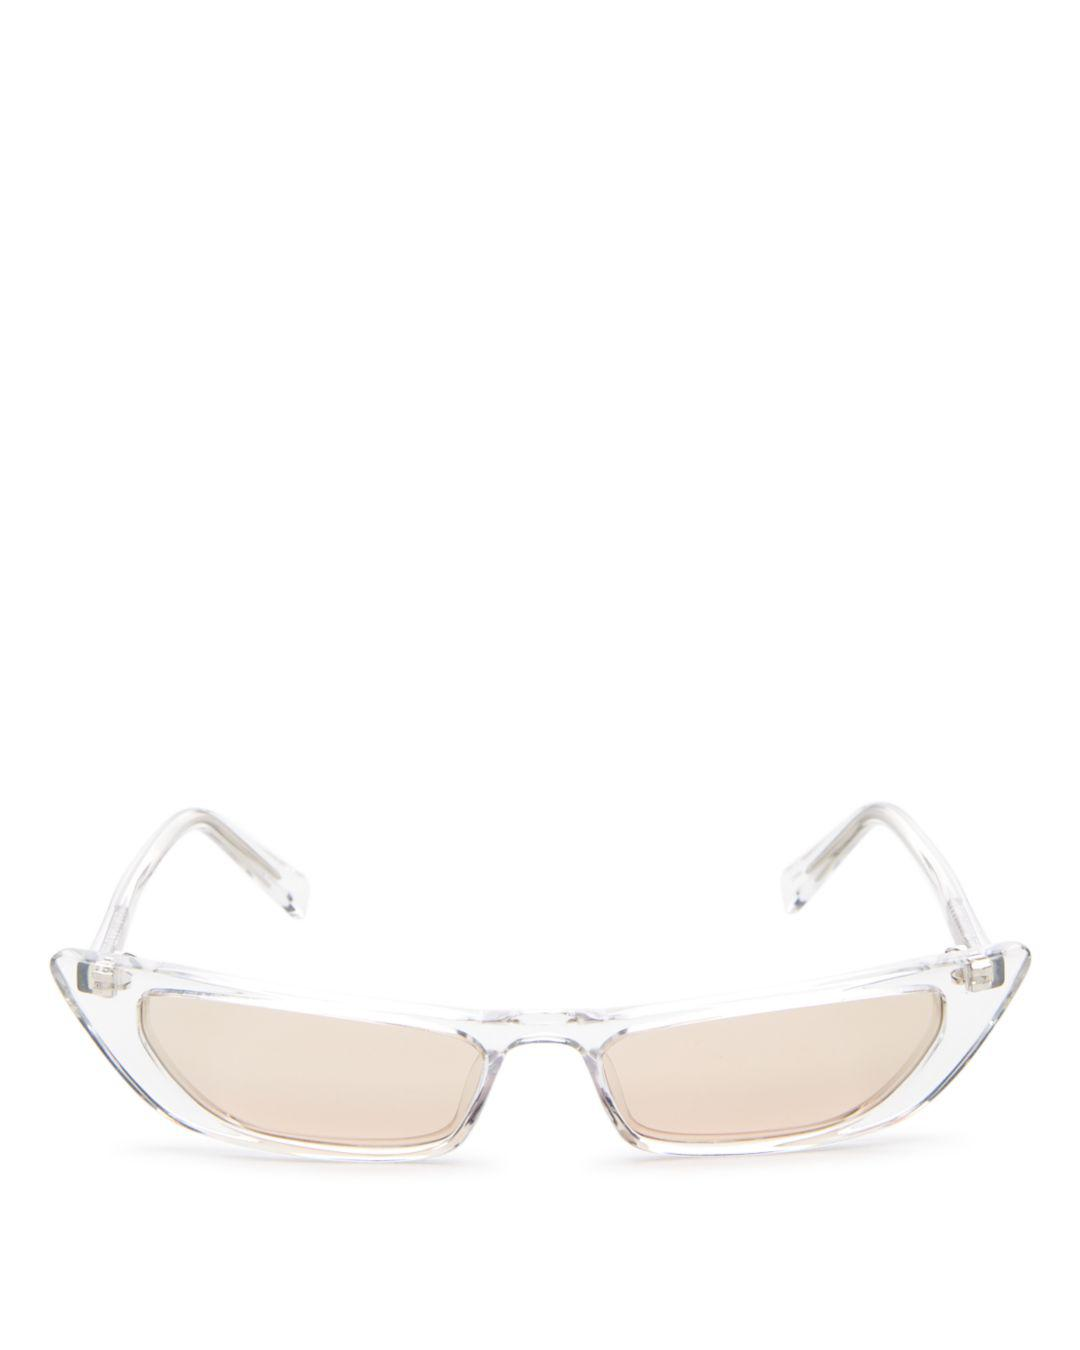 7bc137e2193 Kendall + Kylie. Kendall And Kylie Women s Vivian Extreme Cat Eye Sunglasses  ...